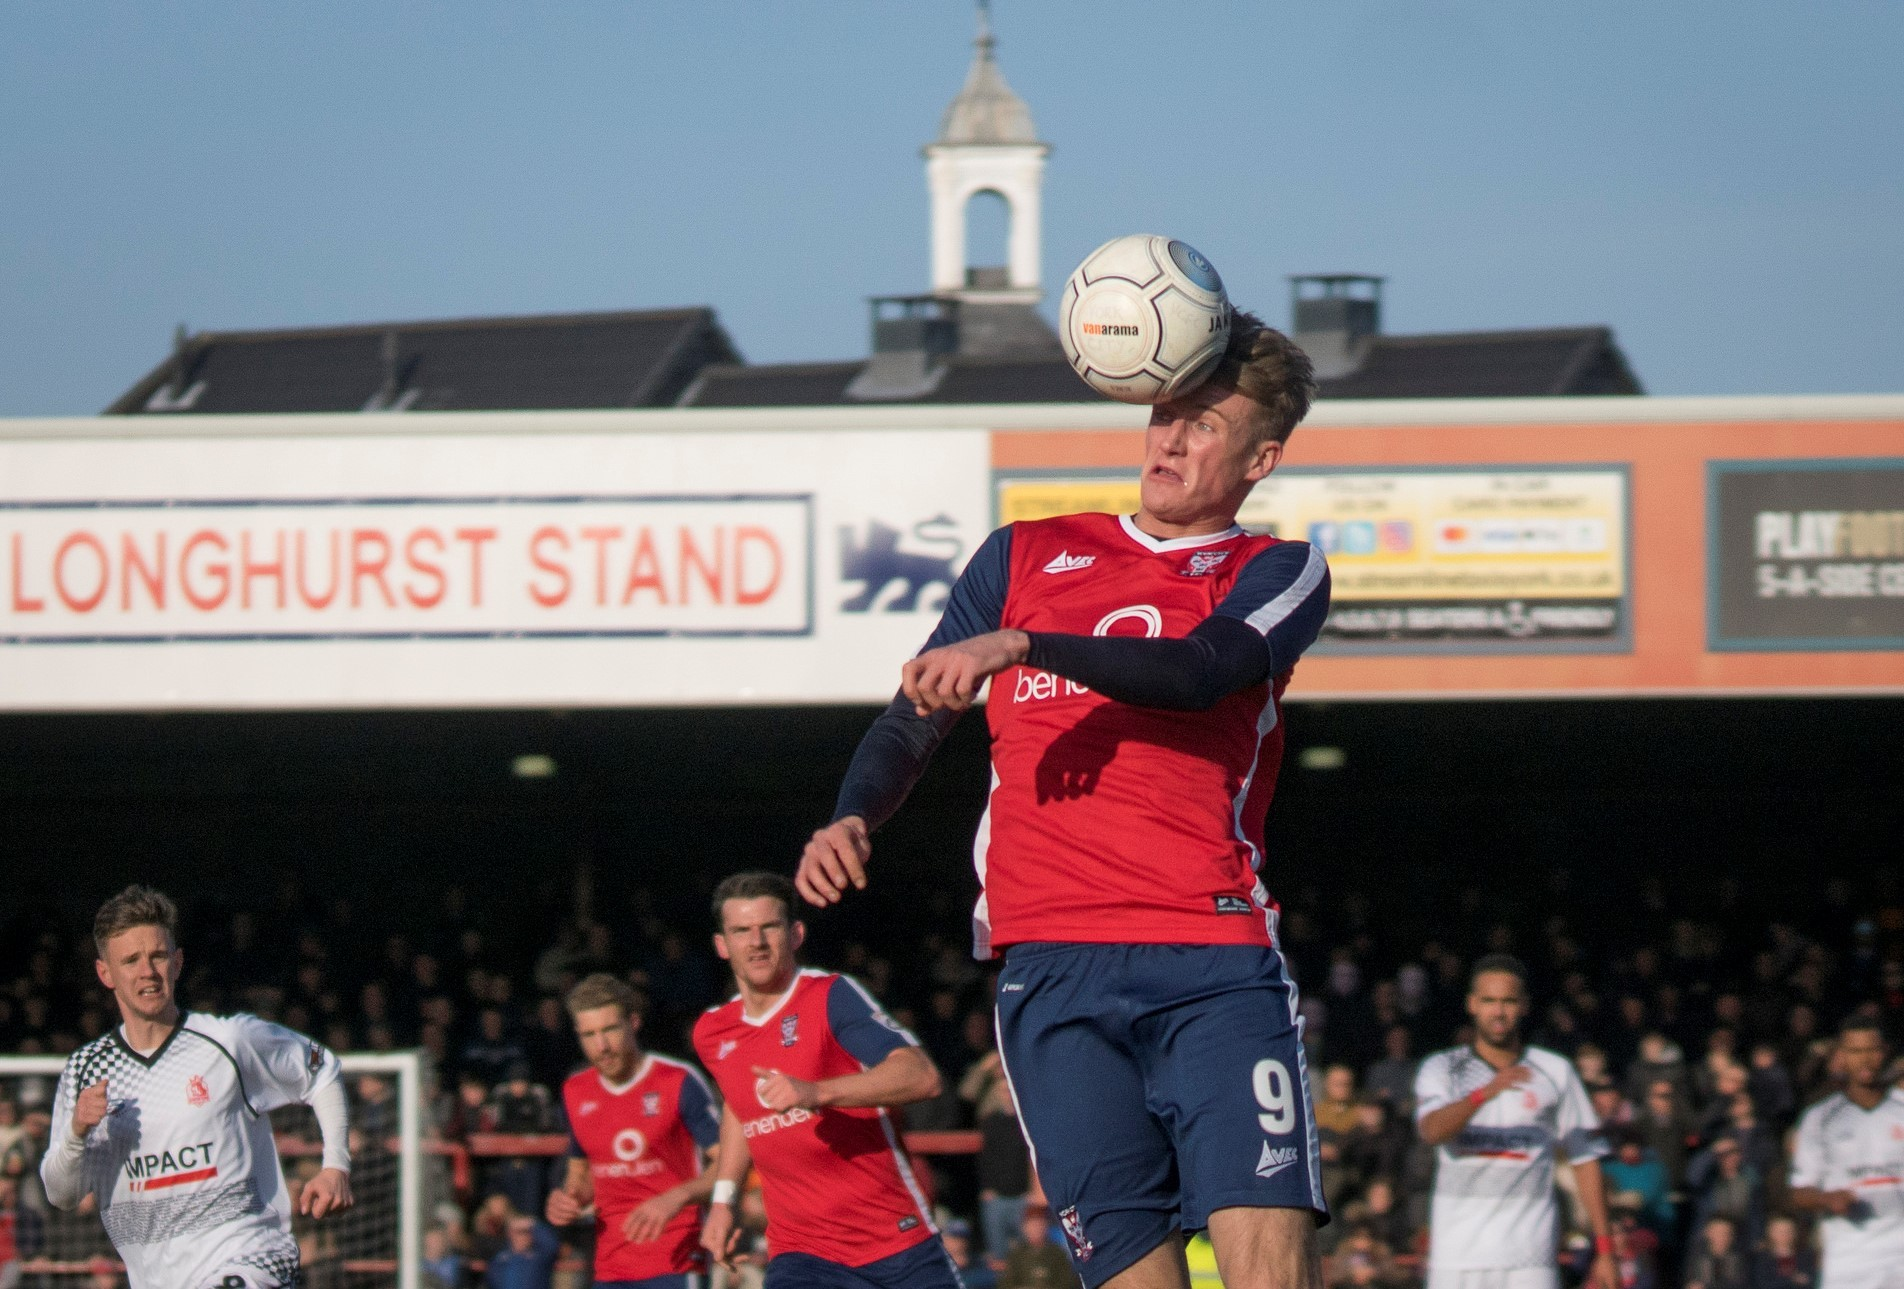 ON THE RISE: Alex Kempster in action for York City against Alfreton Town at Bootham Crescent. Picture: Ian Parker/Ice Photography